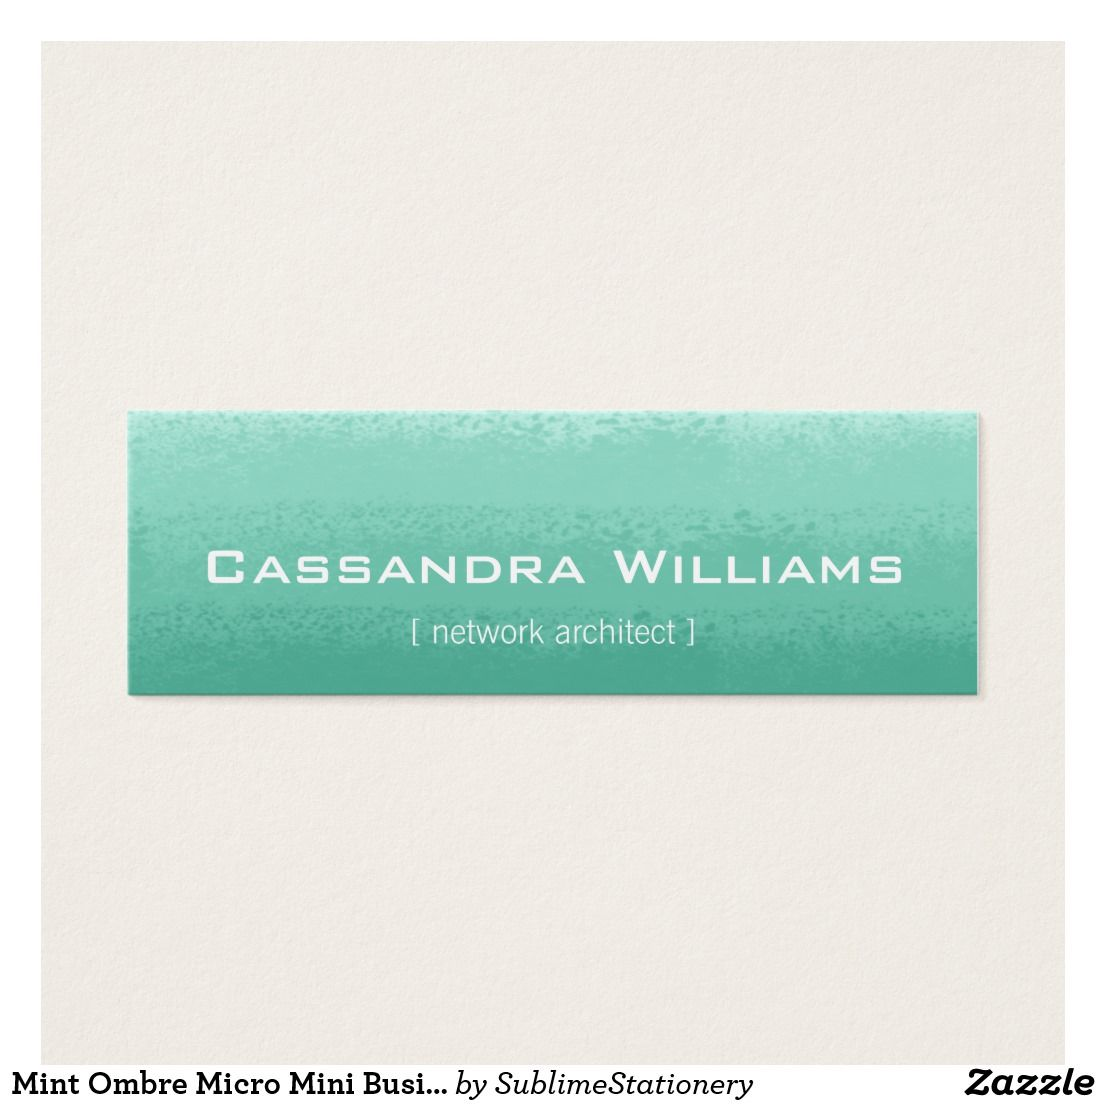 Mint ombre micro mini business cards business cards business and mint ombre micro mini business cards colourmoves